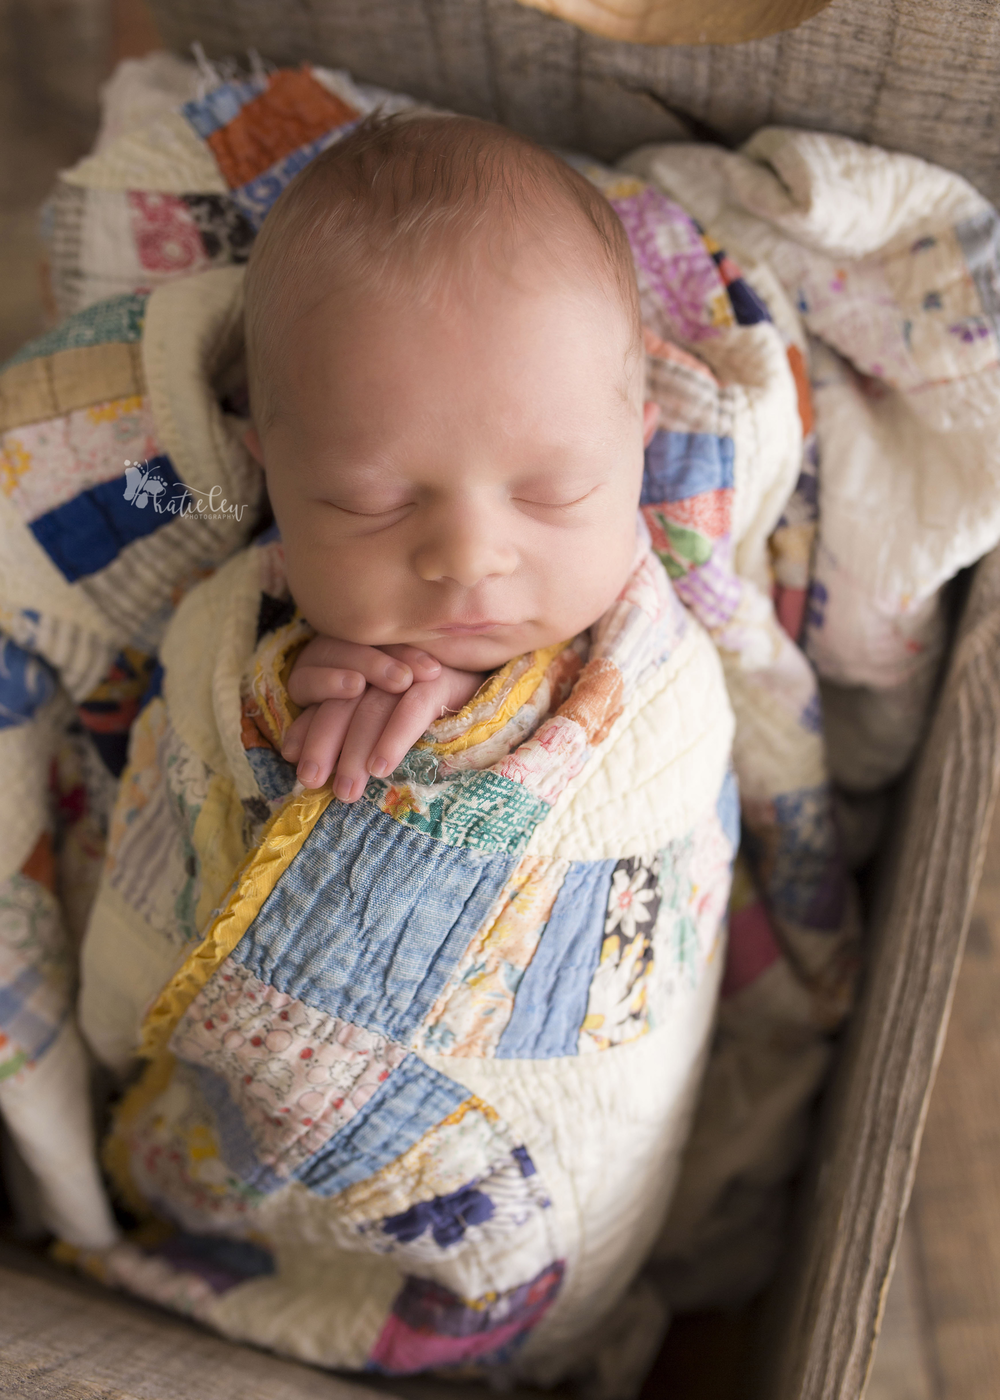 baby wrapped in quilts and tucked in bed